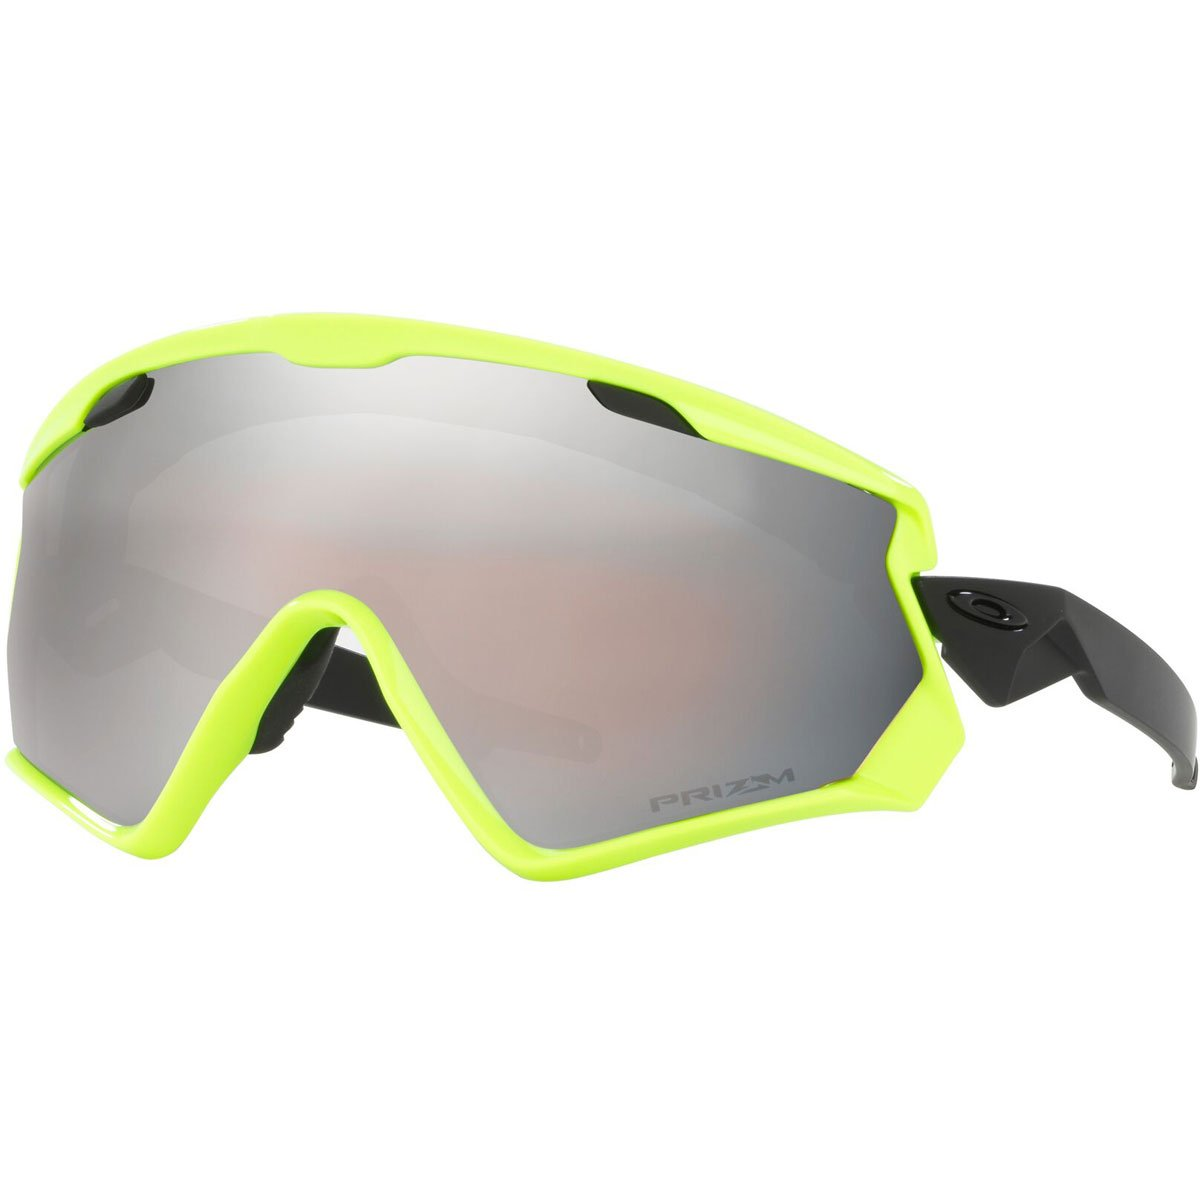 Oakley Men's Wind Jacket 2.0 Non-Polarized Iridium Rectangular Sunglasses, Neon Retina, 0 mm